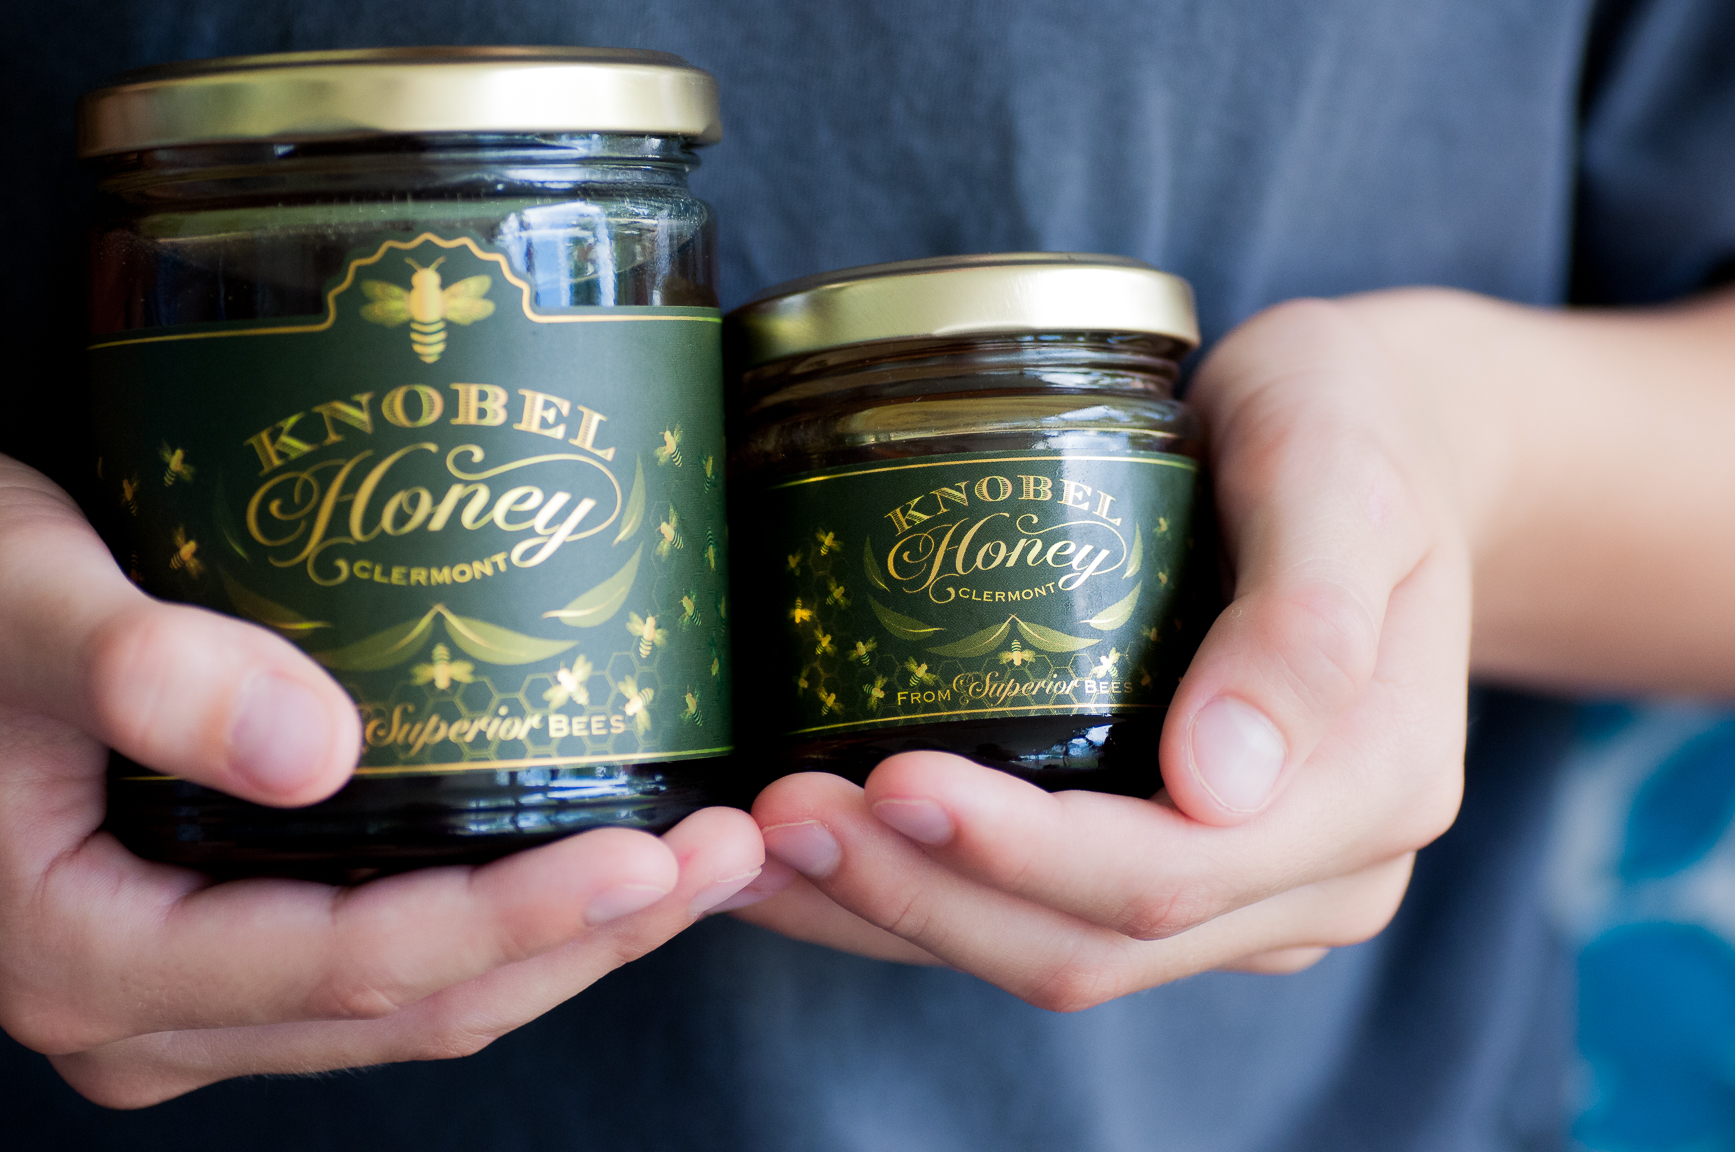 Knobel Honey in Glass